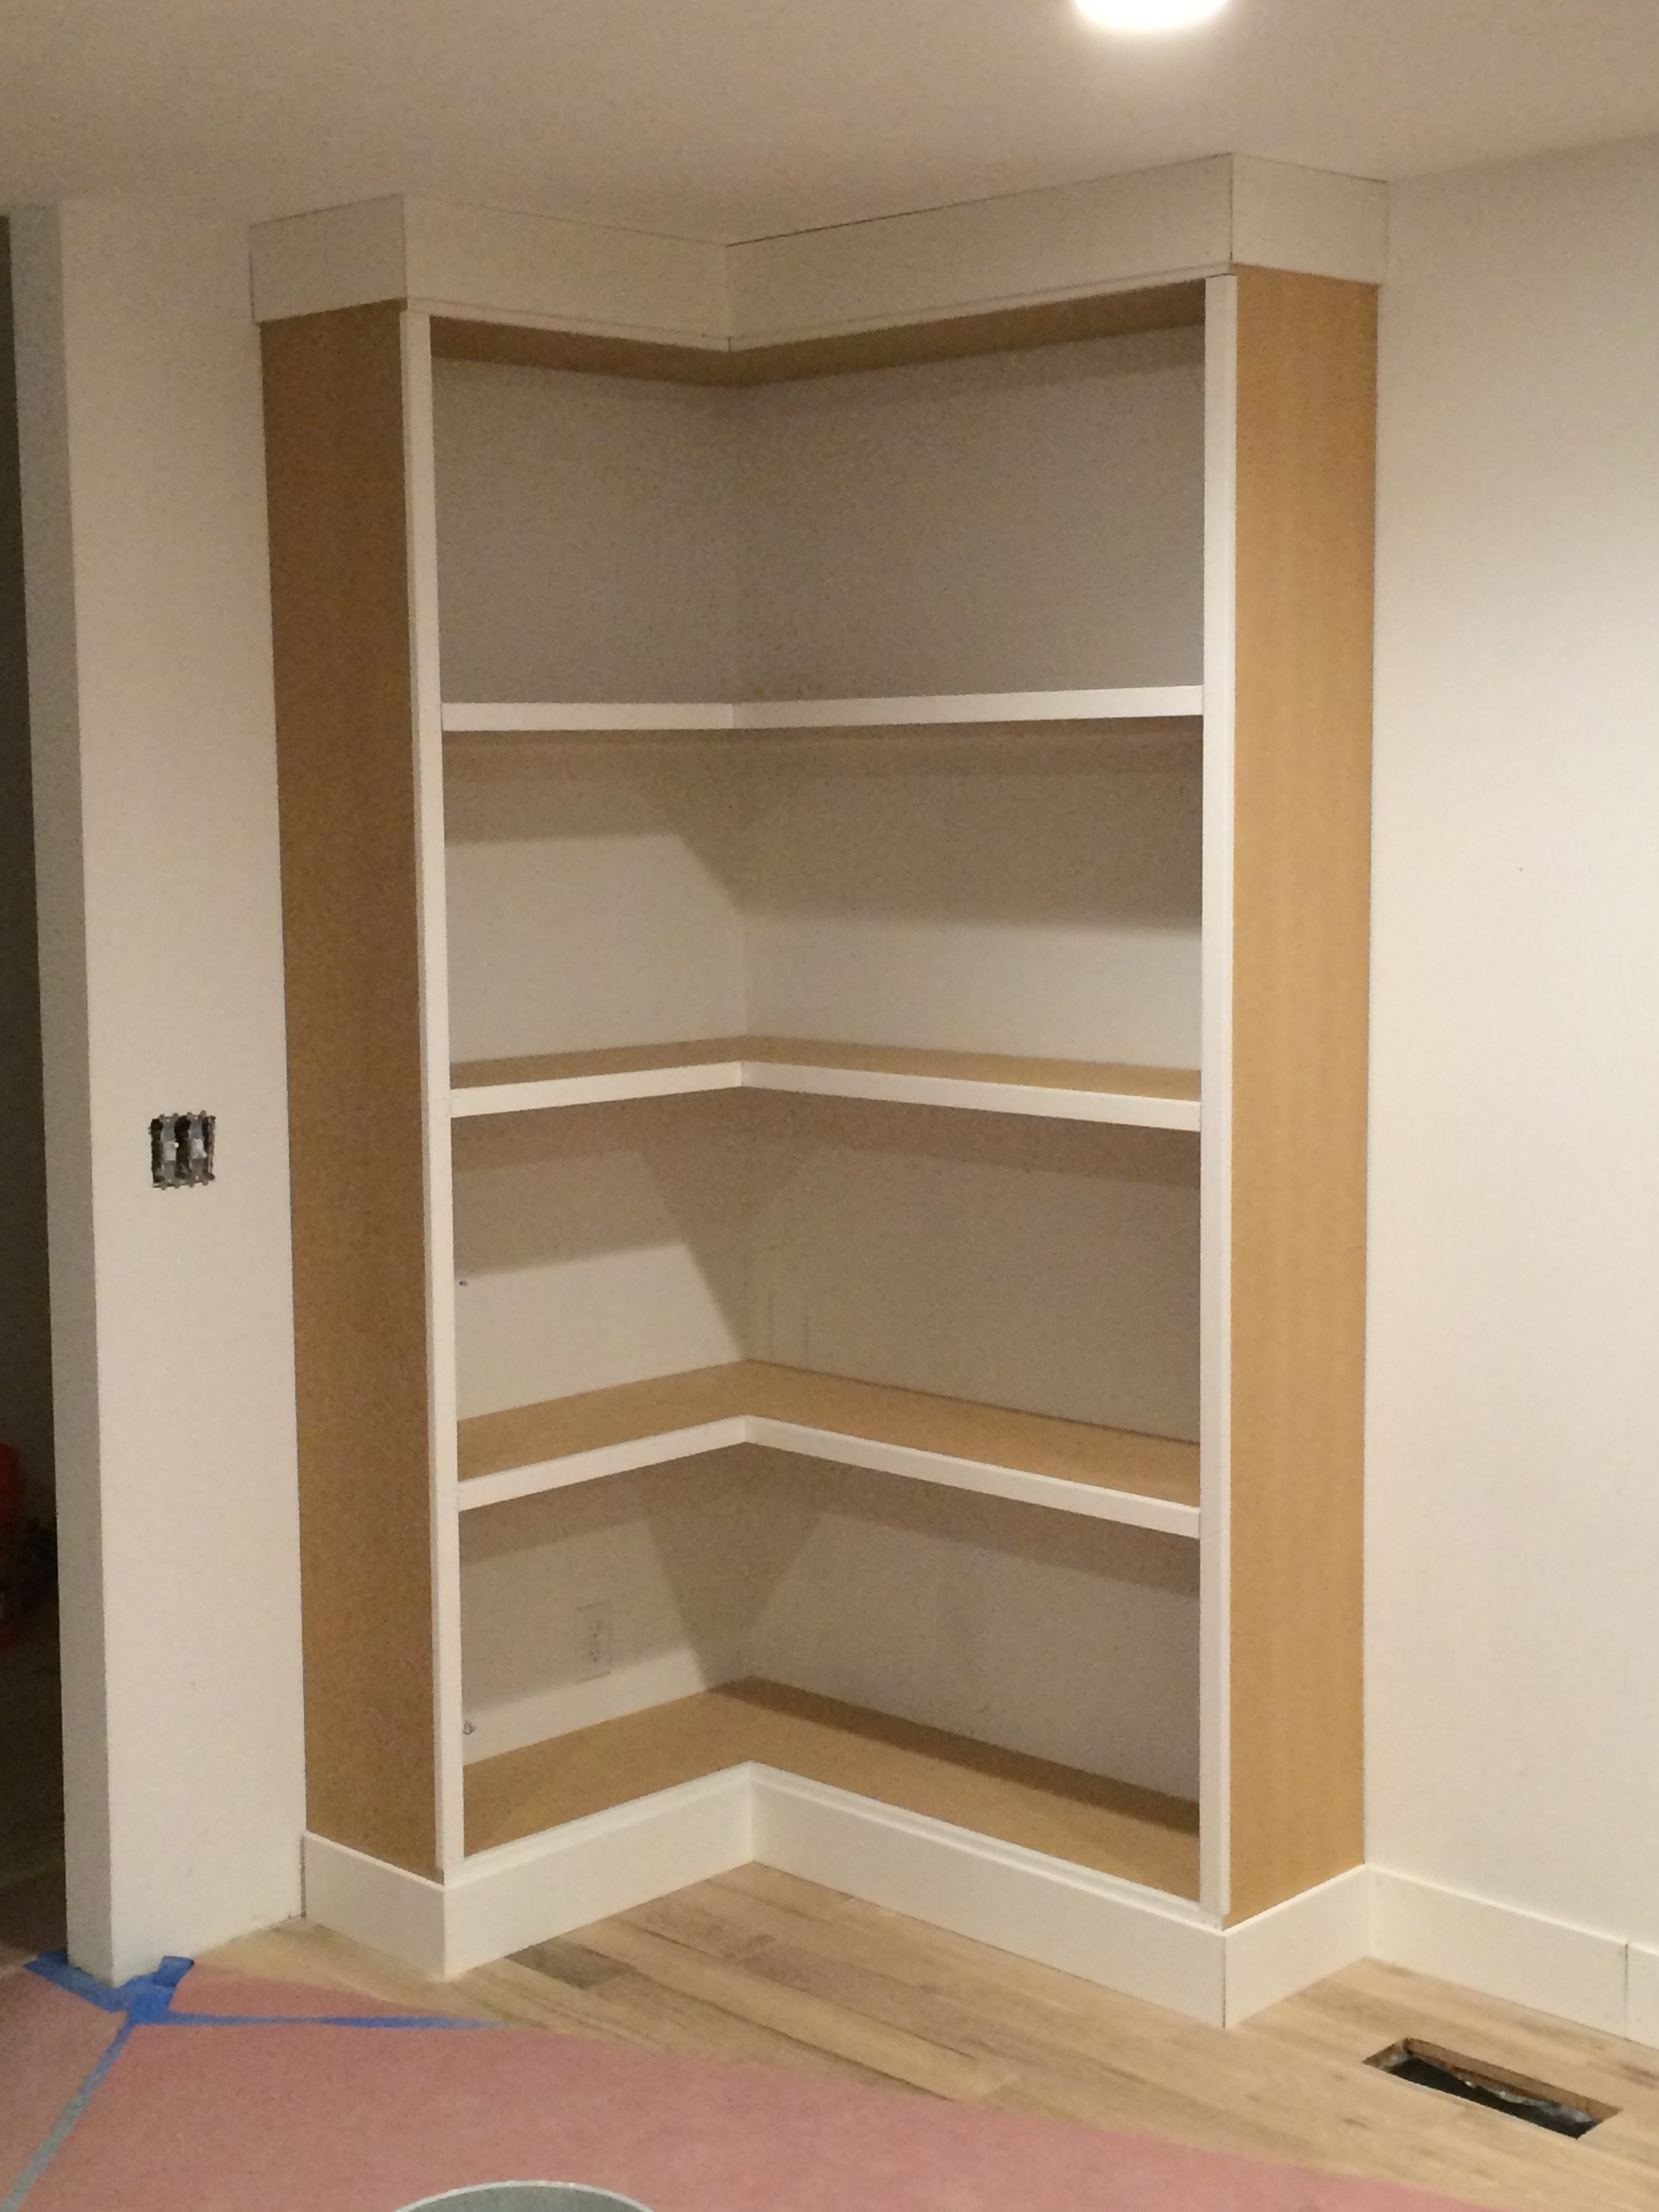 Corner Bookcases For Well Known Diy Corner Bookcase (Video) – Withheart (View 4 of 15)